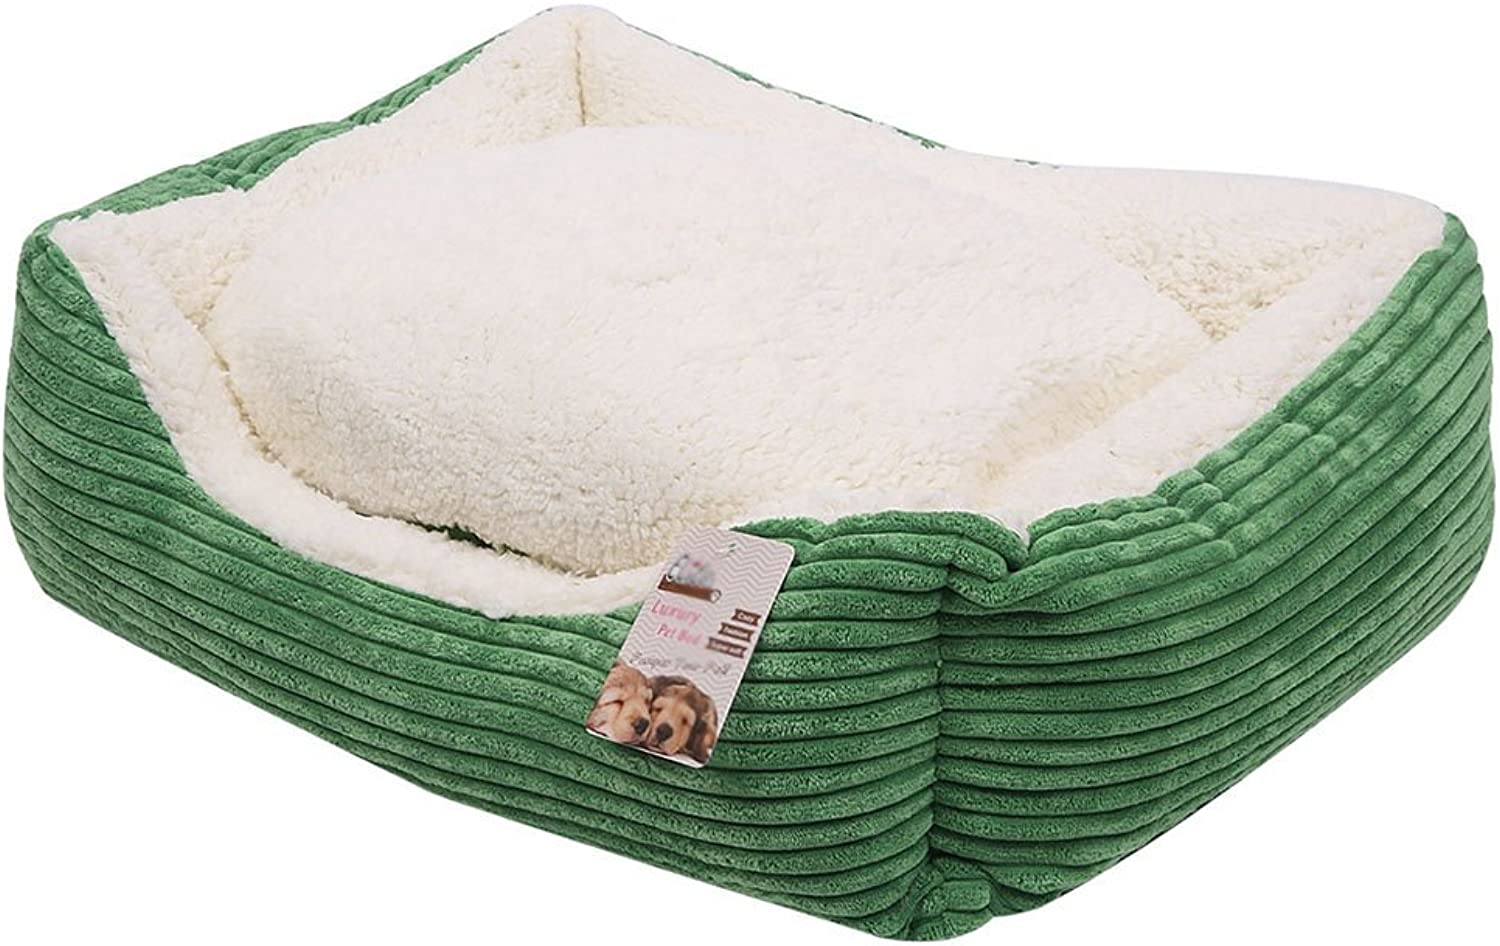 Dogs Bed House Pet Bed Sleeping Bag Cushioncat for Cats and Small Medium Large Dogs Best Pet Supplies GreenS M L (Size   S)